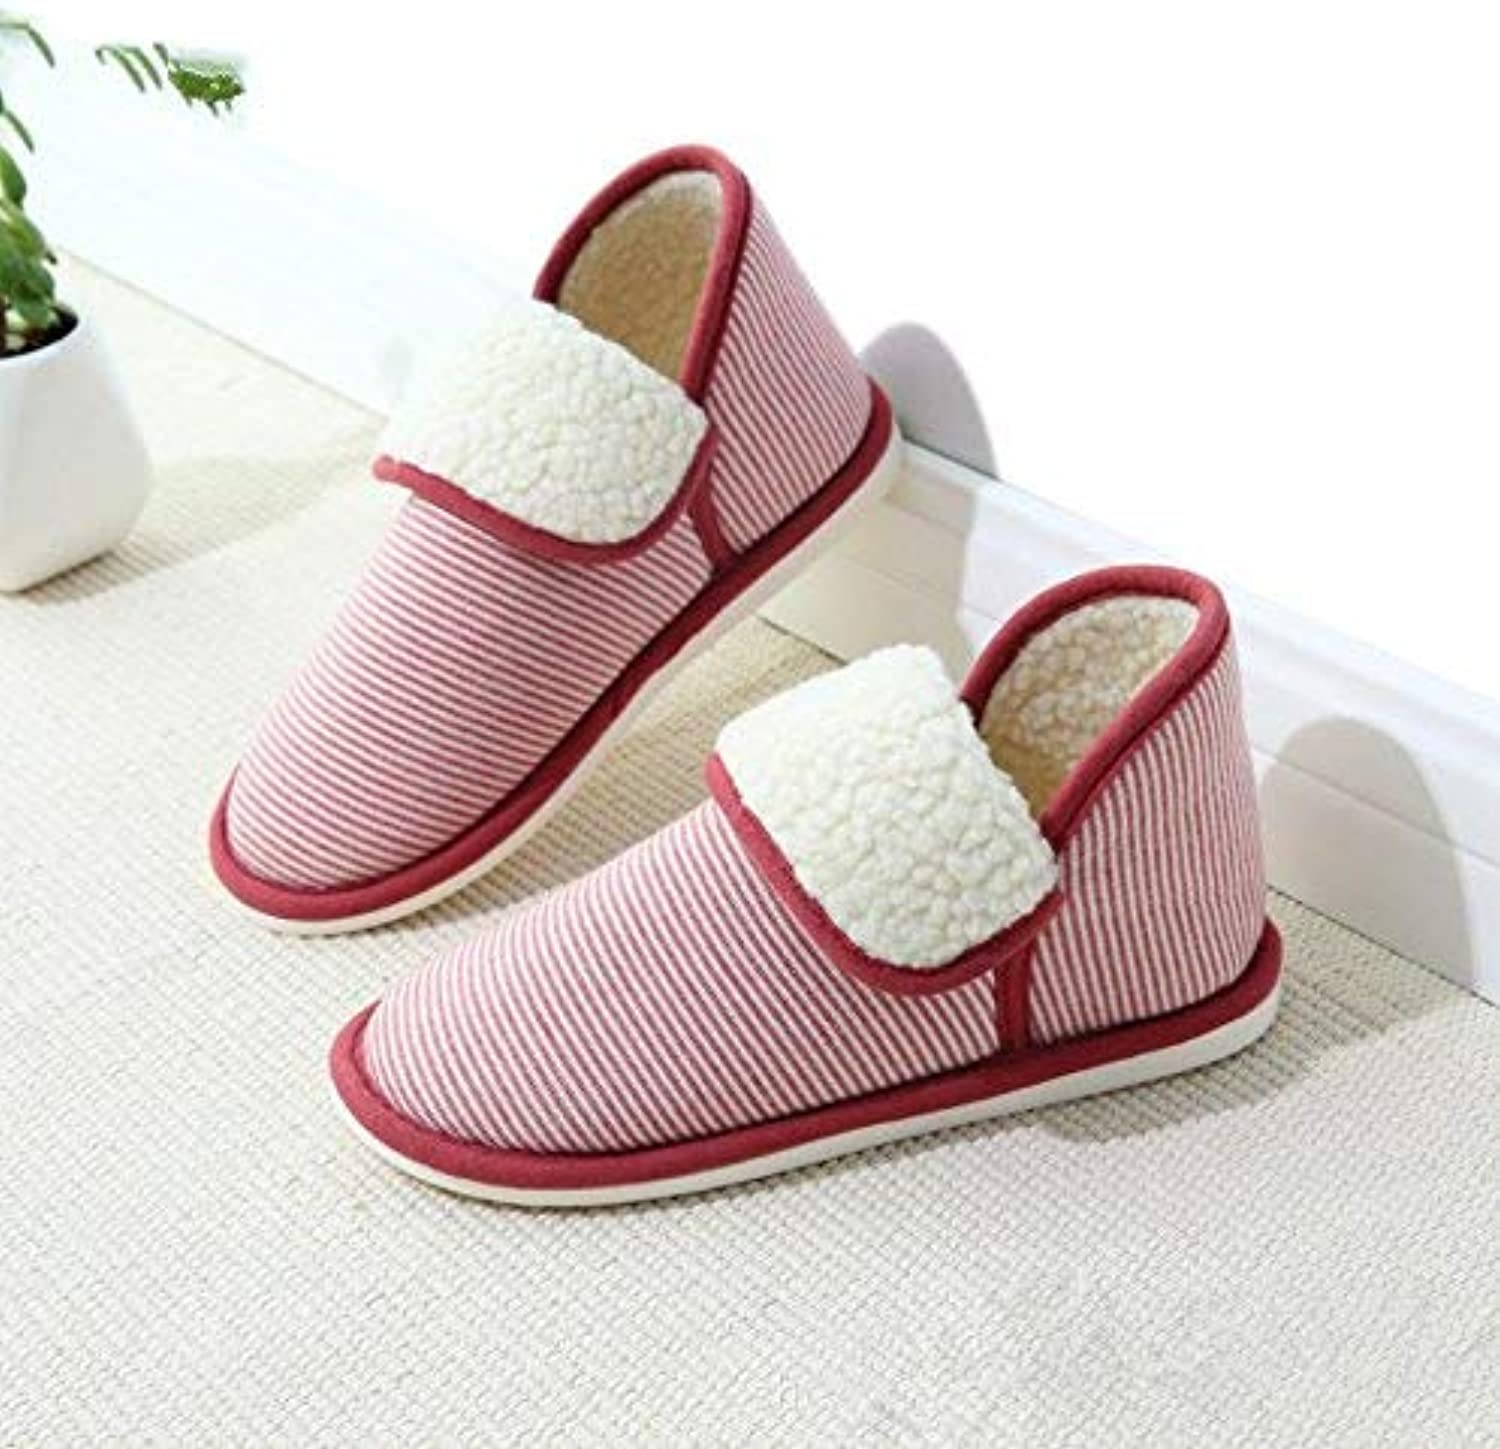 Lady Slippers Women 's Home Slippers Indoor Keep Warm Package Bag Cotton Slippers Bedroom Stripe Red Large for Women